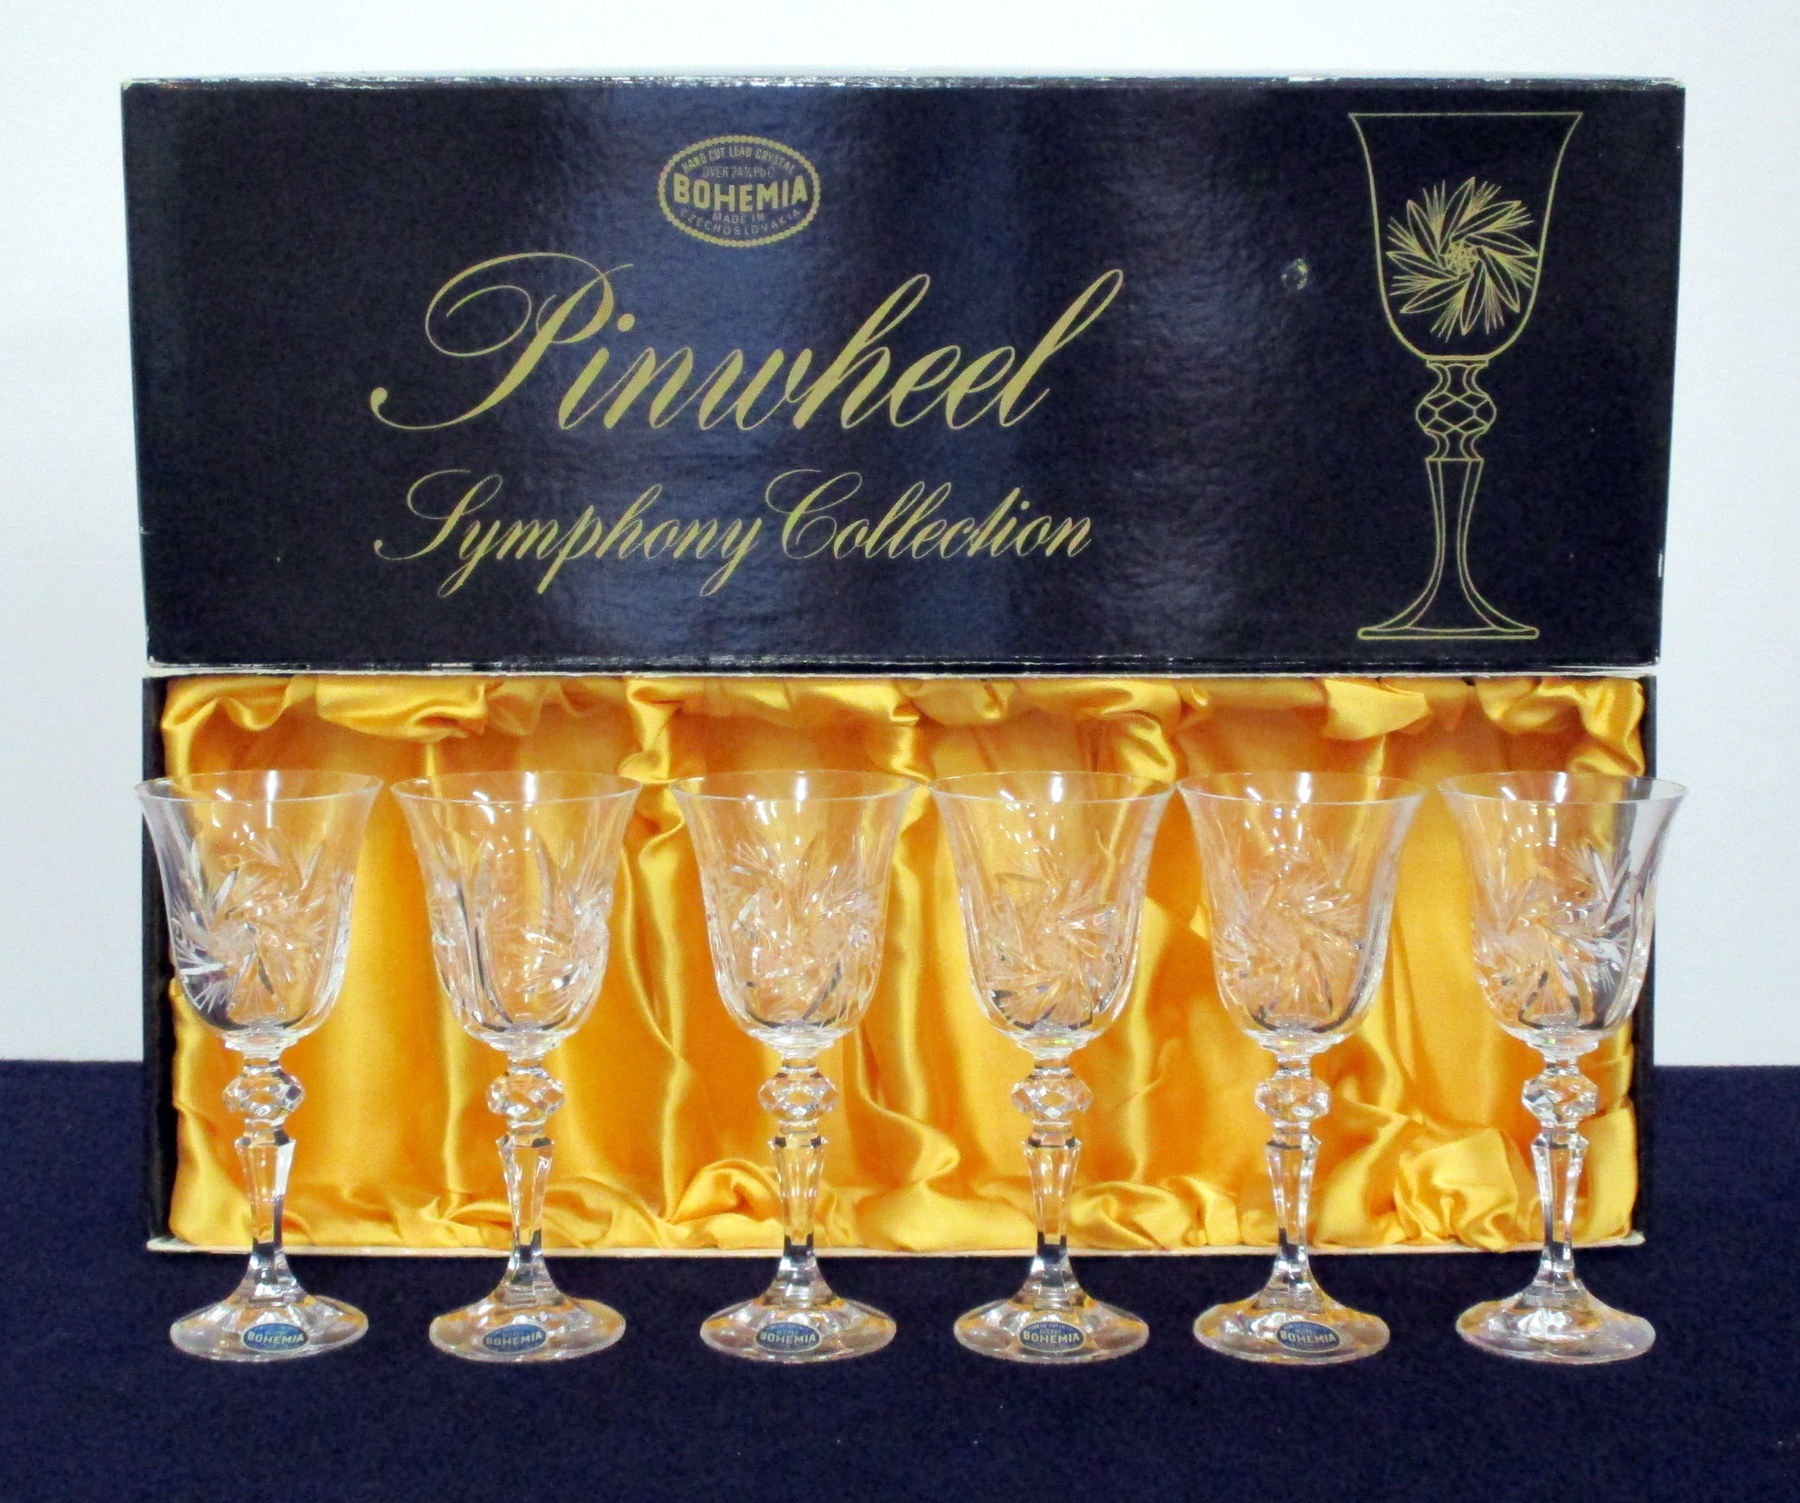 6 Bohemia Hand Cut Lead Crystal 90ml Goblets, lined presentation case, 2 vsl chipped rims